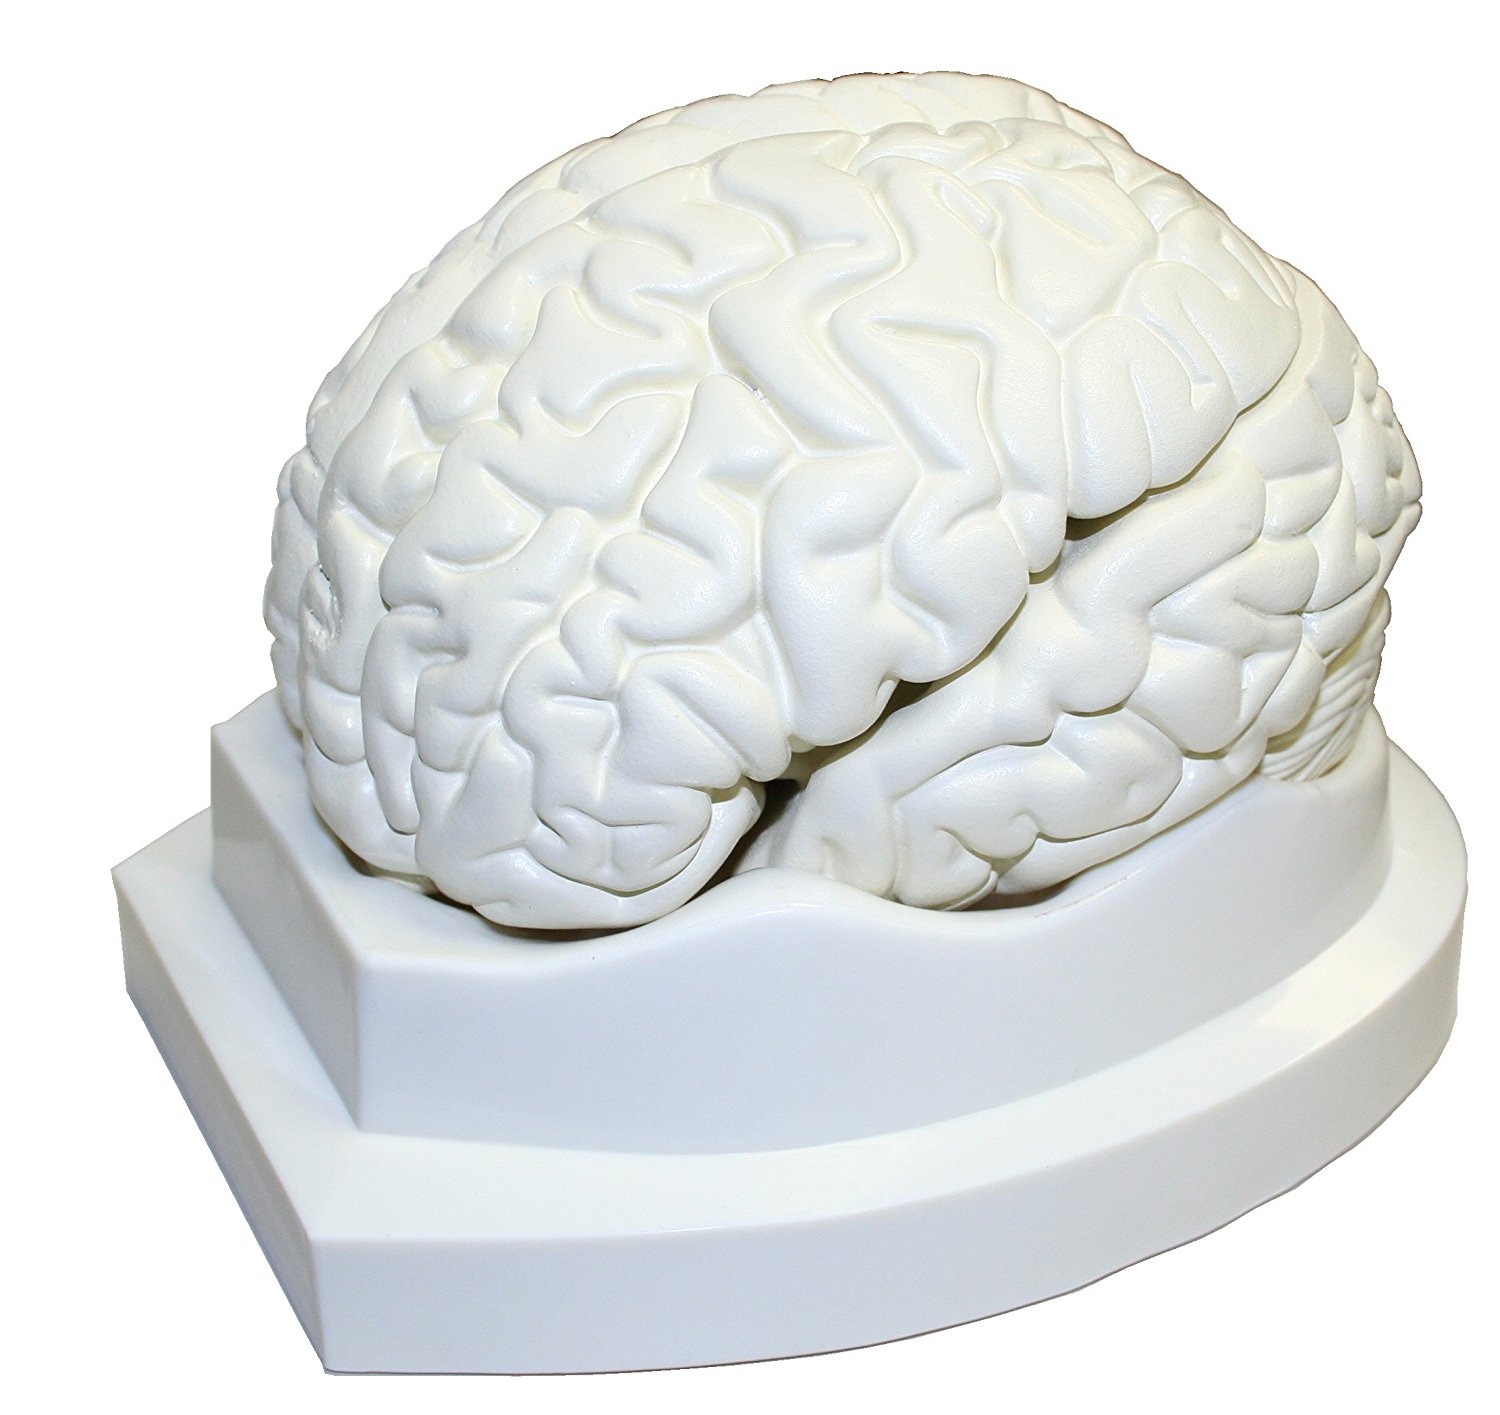 Vision Scientific Life Size Brain Models-3 Parts